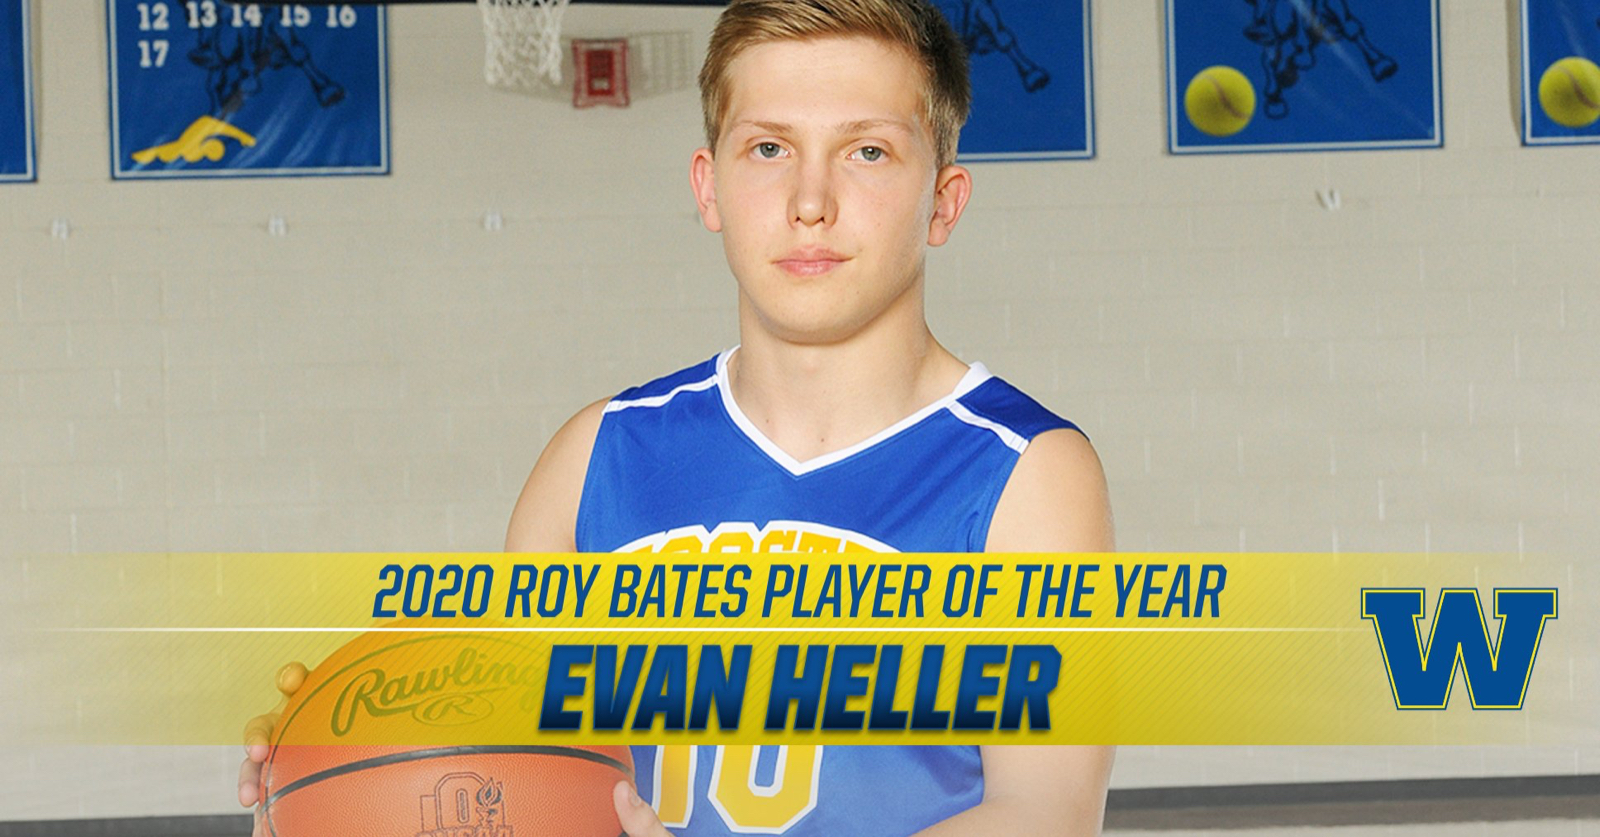 Evan Heller Named Roy S. Bates Foundation Player of the Year